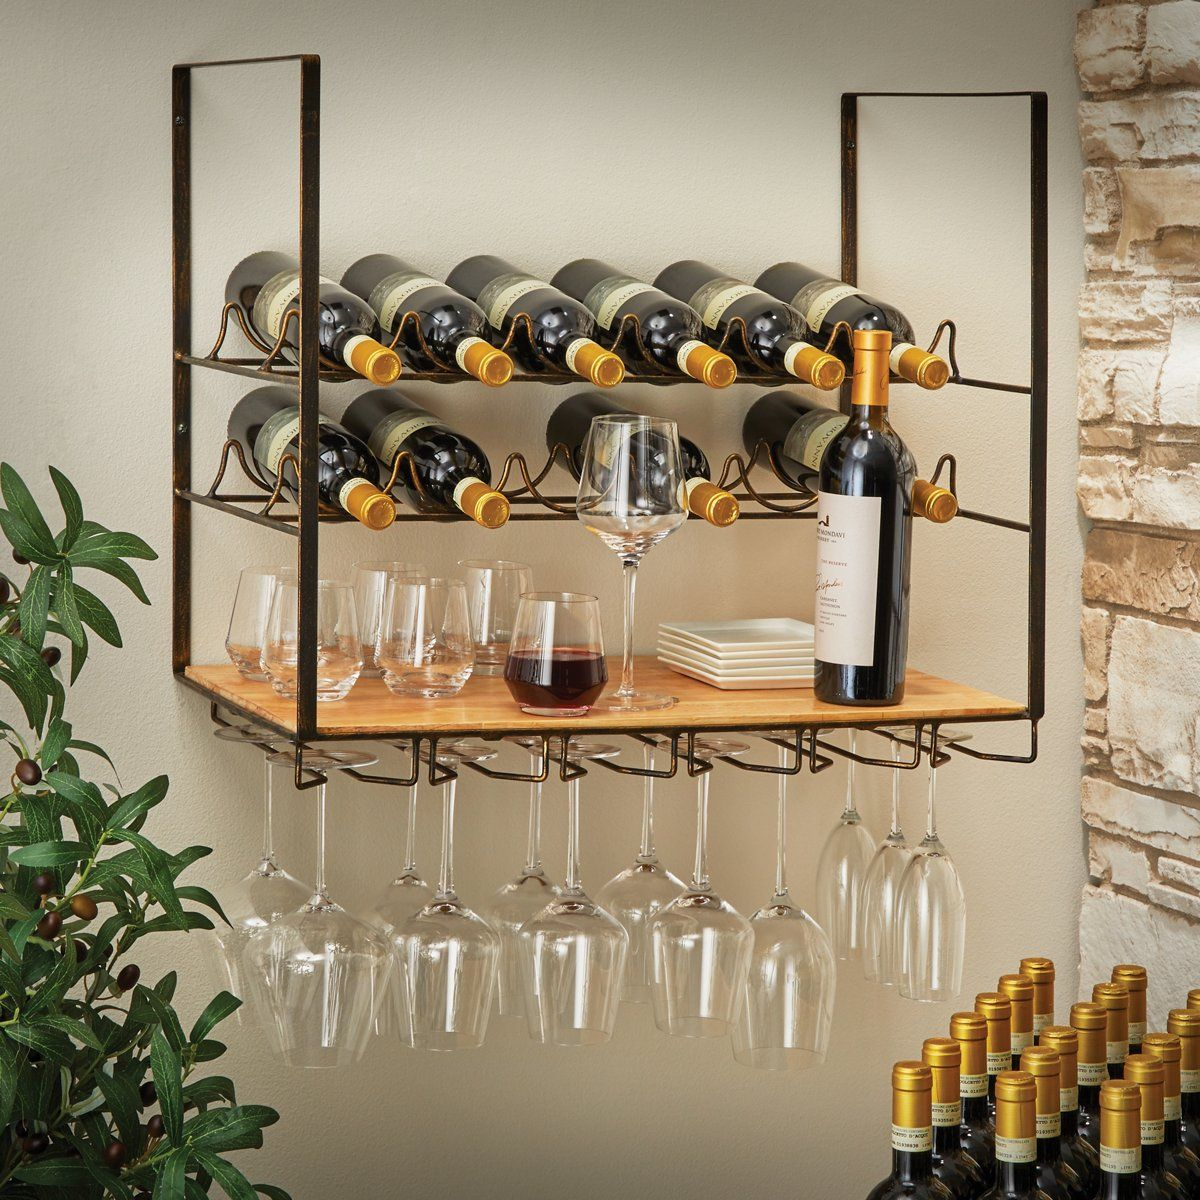 12 Bottle Wall Mounted Wine Rack And Stemware Holder Wall Mounted Wine Rack Wine Rack Design Bottle Wall